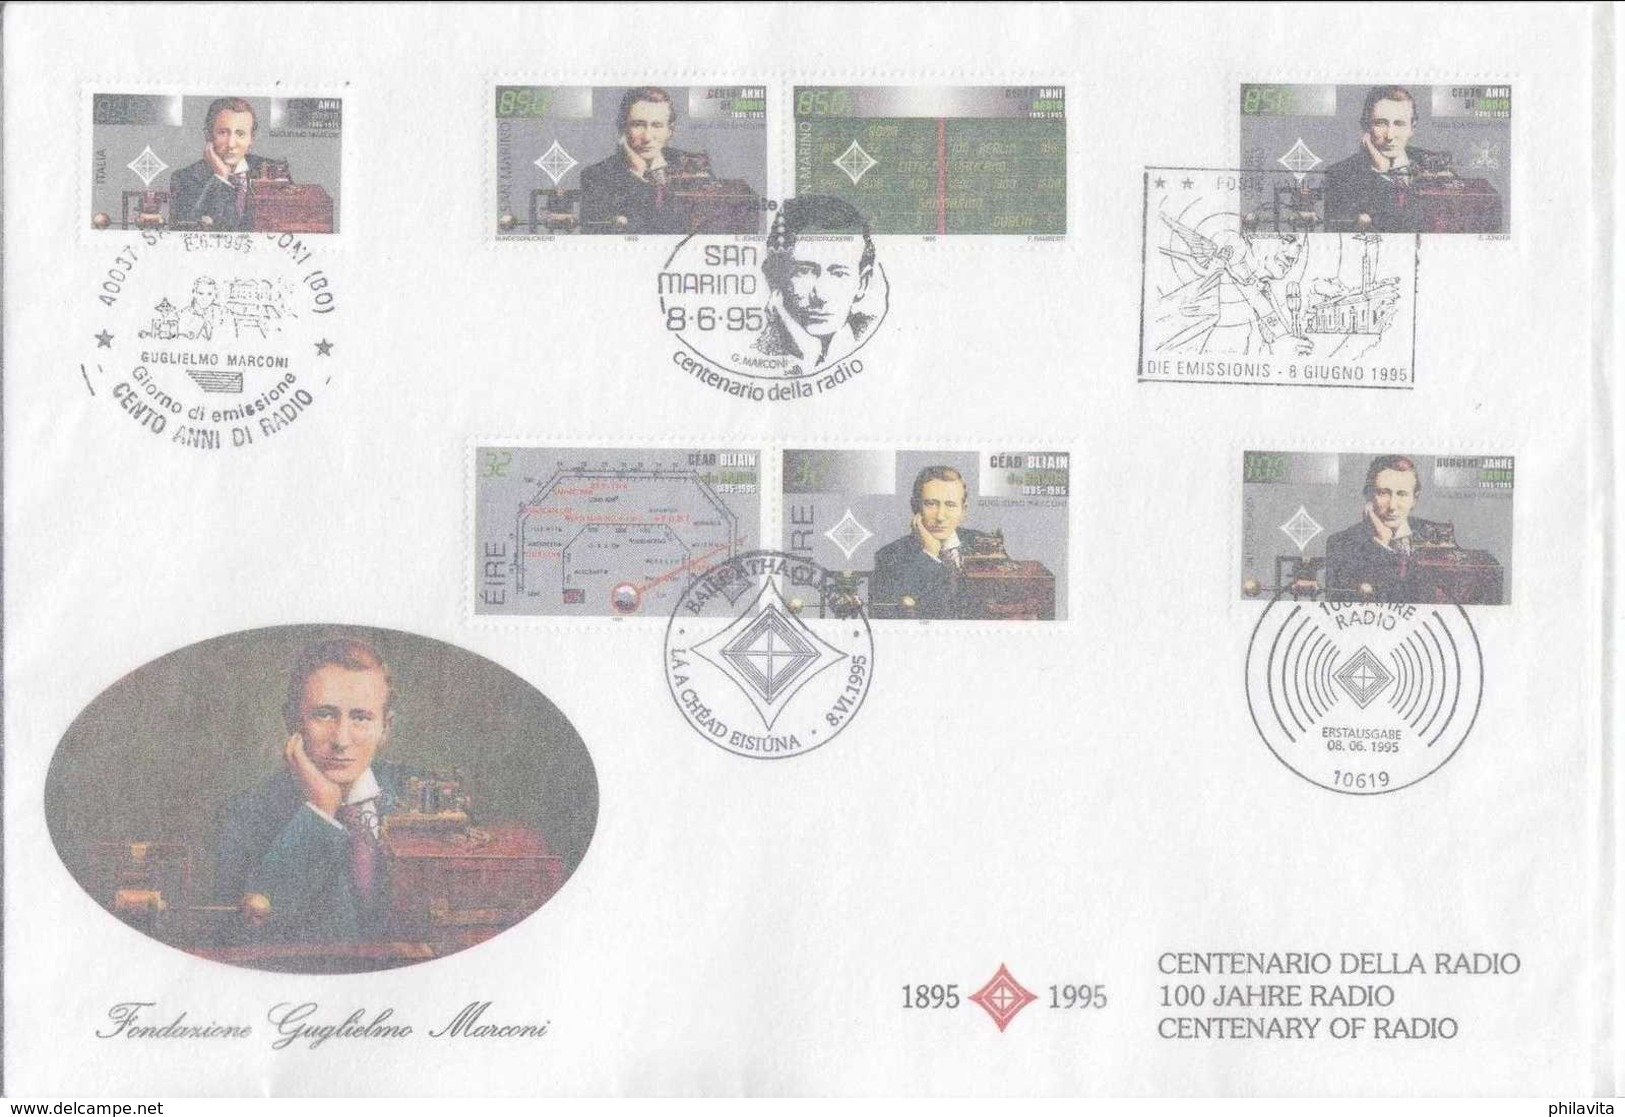 1995 Marconi / Invention Of Radio - Joint Issue Of Italy, San Marino, Vatican, Ireland, And Germany -FDC Mixed Of All - Gemeinschaftsausgaben